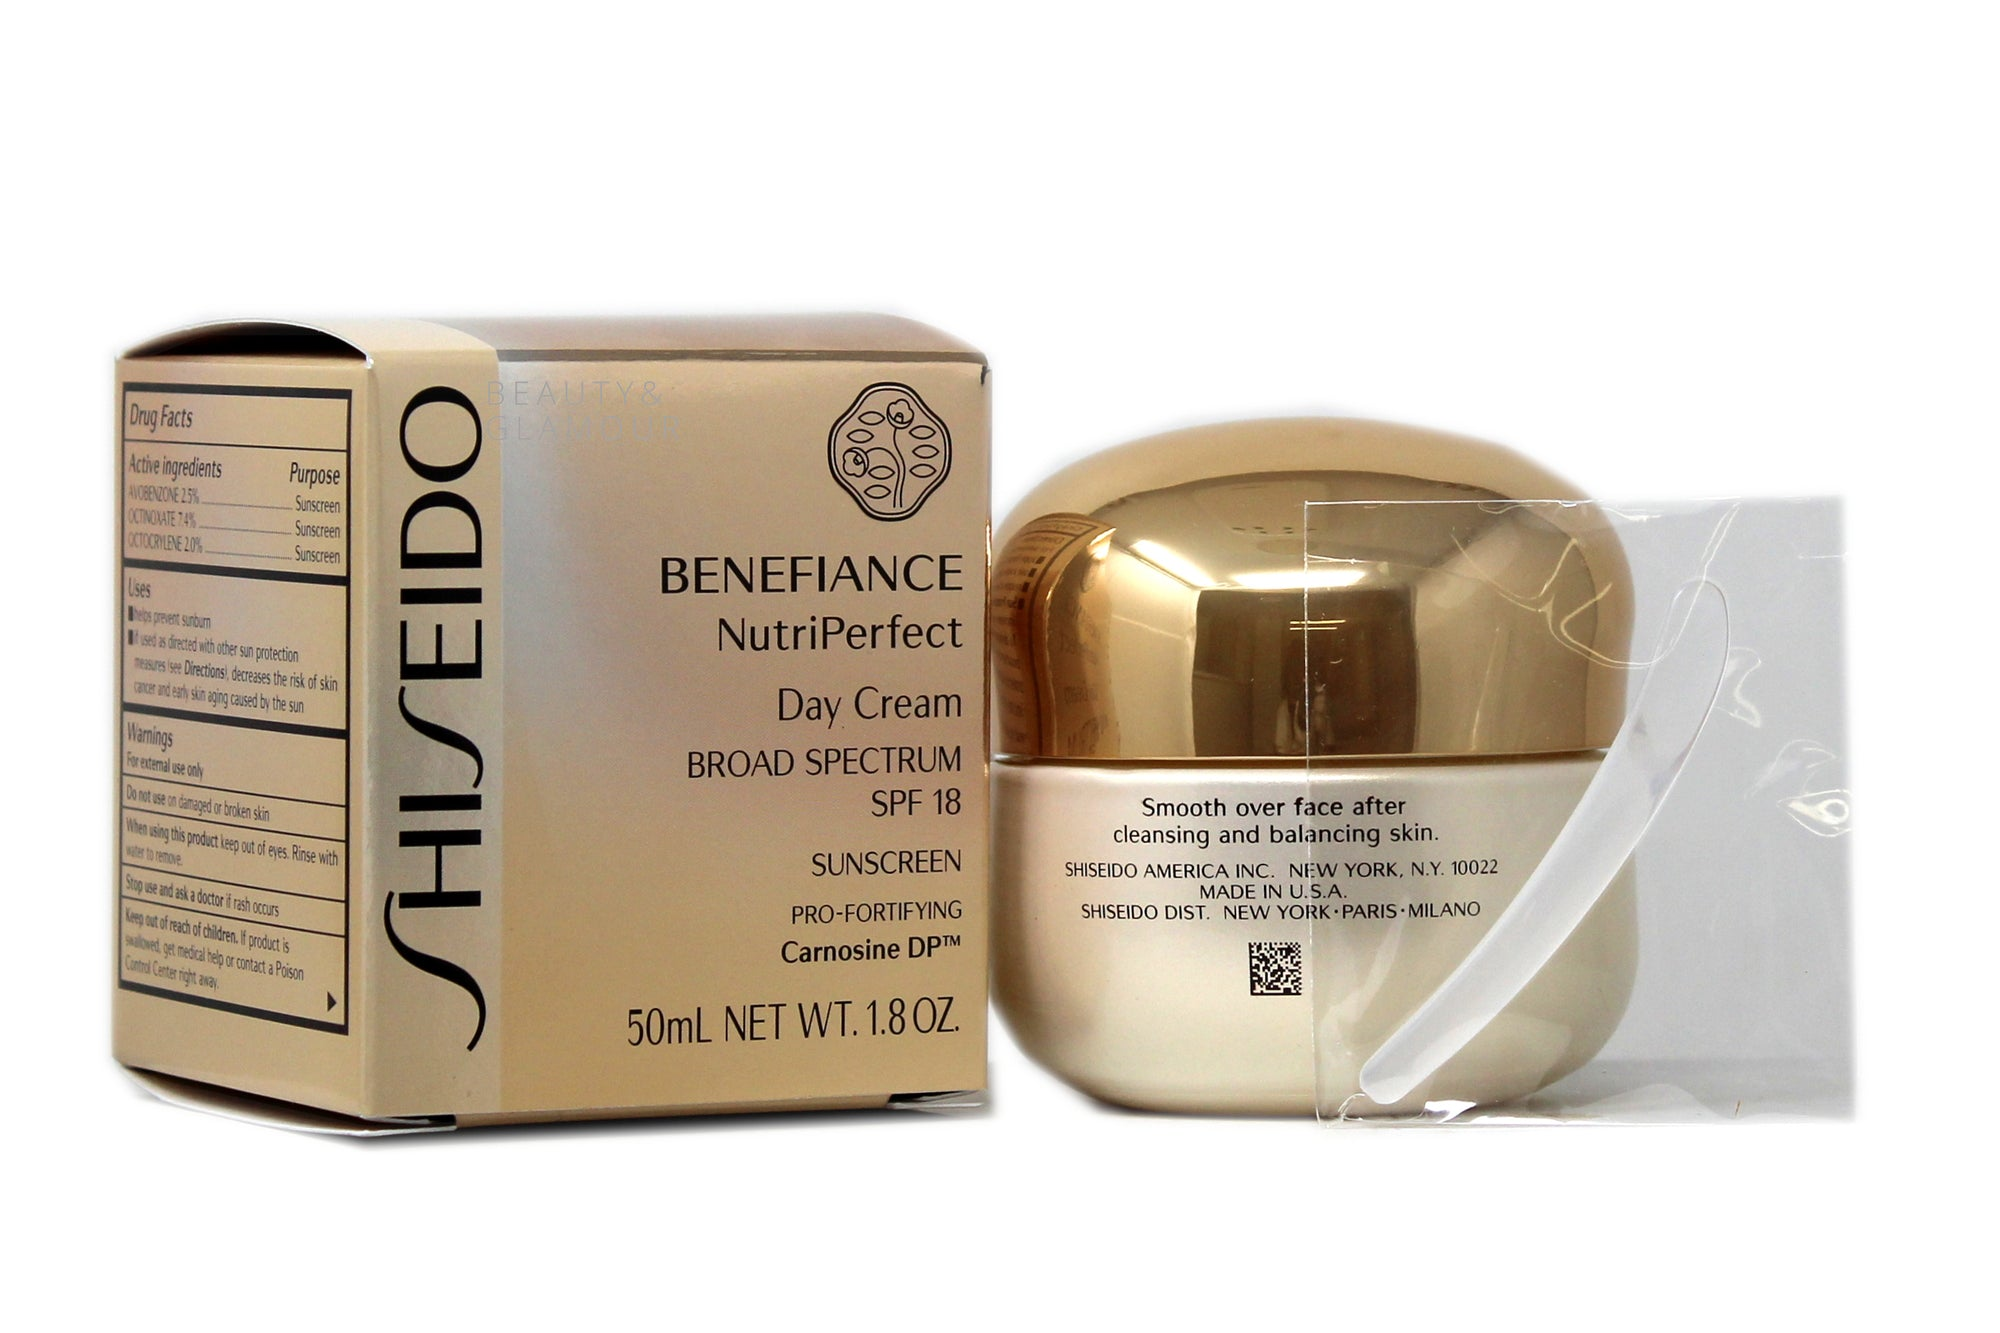 SHISEIDO BENEFIANCE NUTRIPERFECT DAY CREAM  BROAD SPECTRUM SPF 18  SUNSCREEN PRO-FORTIFYING  AVAILABLE SIZE: 50 ML/1.8 OZ.  BENEFITS:  LIGHT-DIFFUSING TECHNOLOGY HELPS MINIMIZE THE APPEARANCE OF AGE SPOTS AND UNEVEN SKIN TONE. FRESH FRAGRANCE OF TEA ROSE ELEMENT.